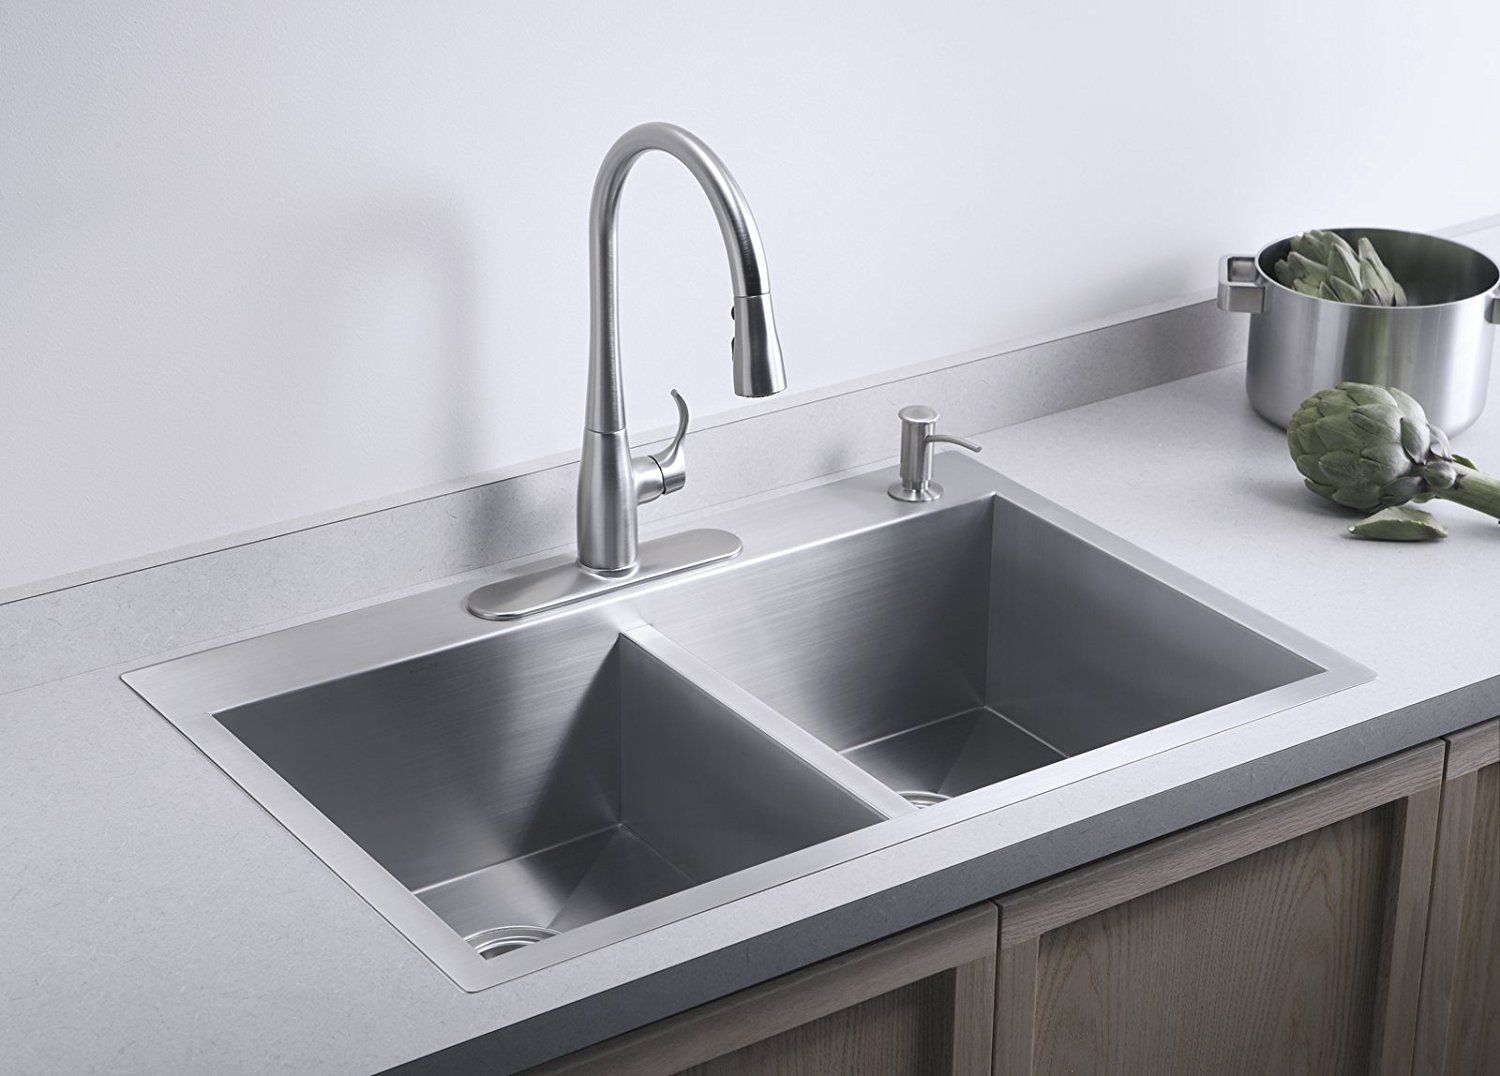 Kohler K 3820 4 Na Double Basin Kitchen Sink With Four Hole Faucet Drilling From The Vault Collection Stainless Steel Faucetdepot Com